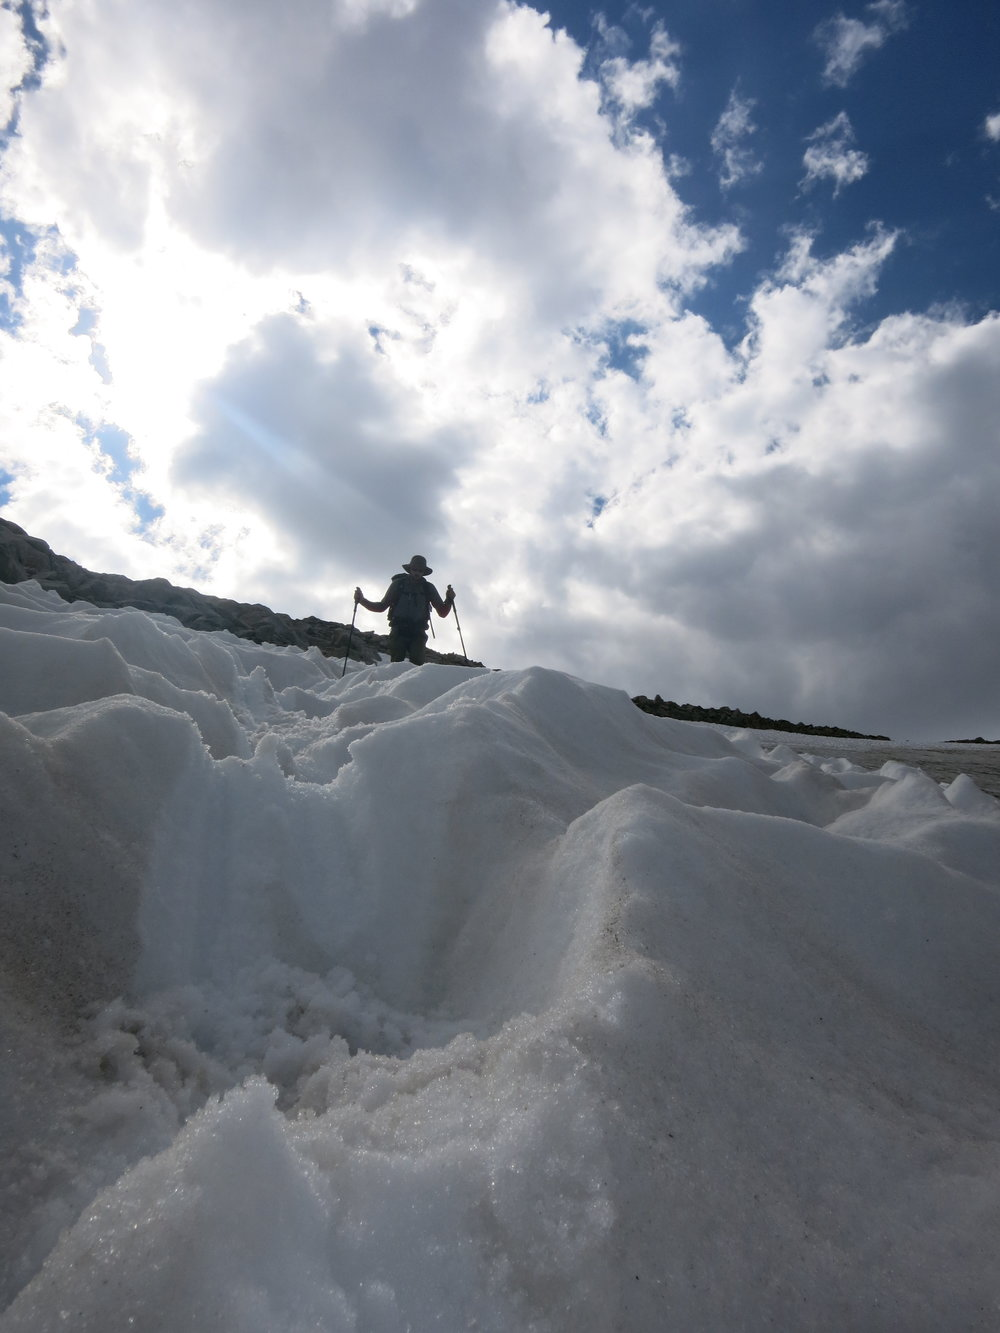 Descending the snowfield.